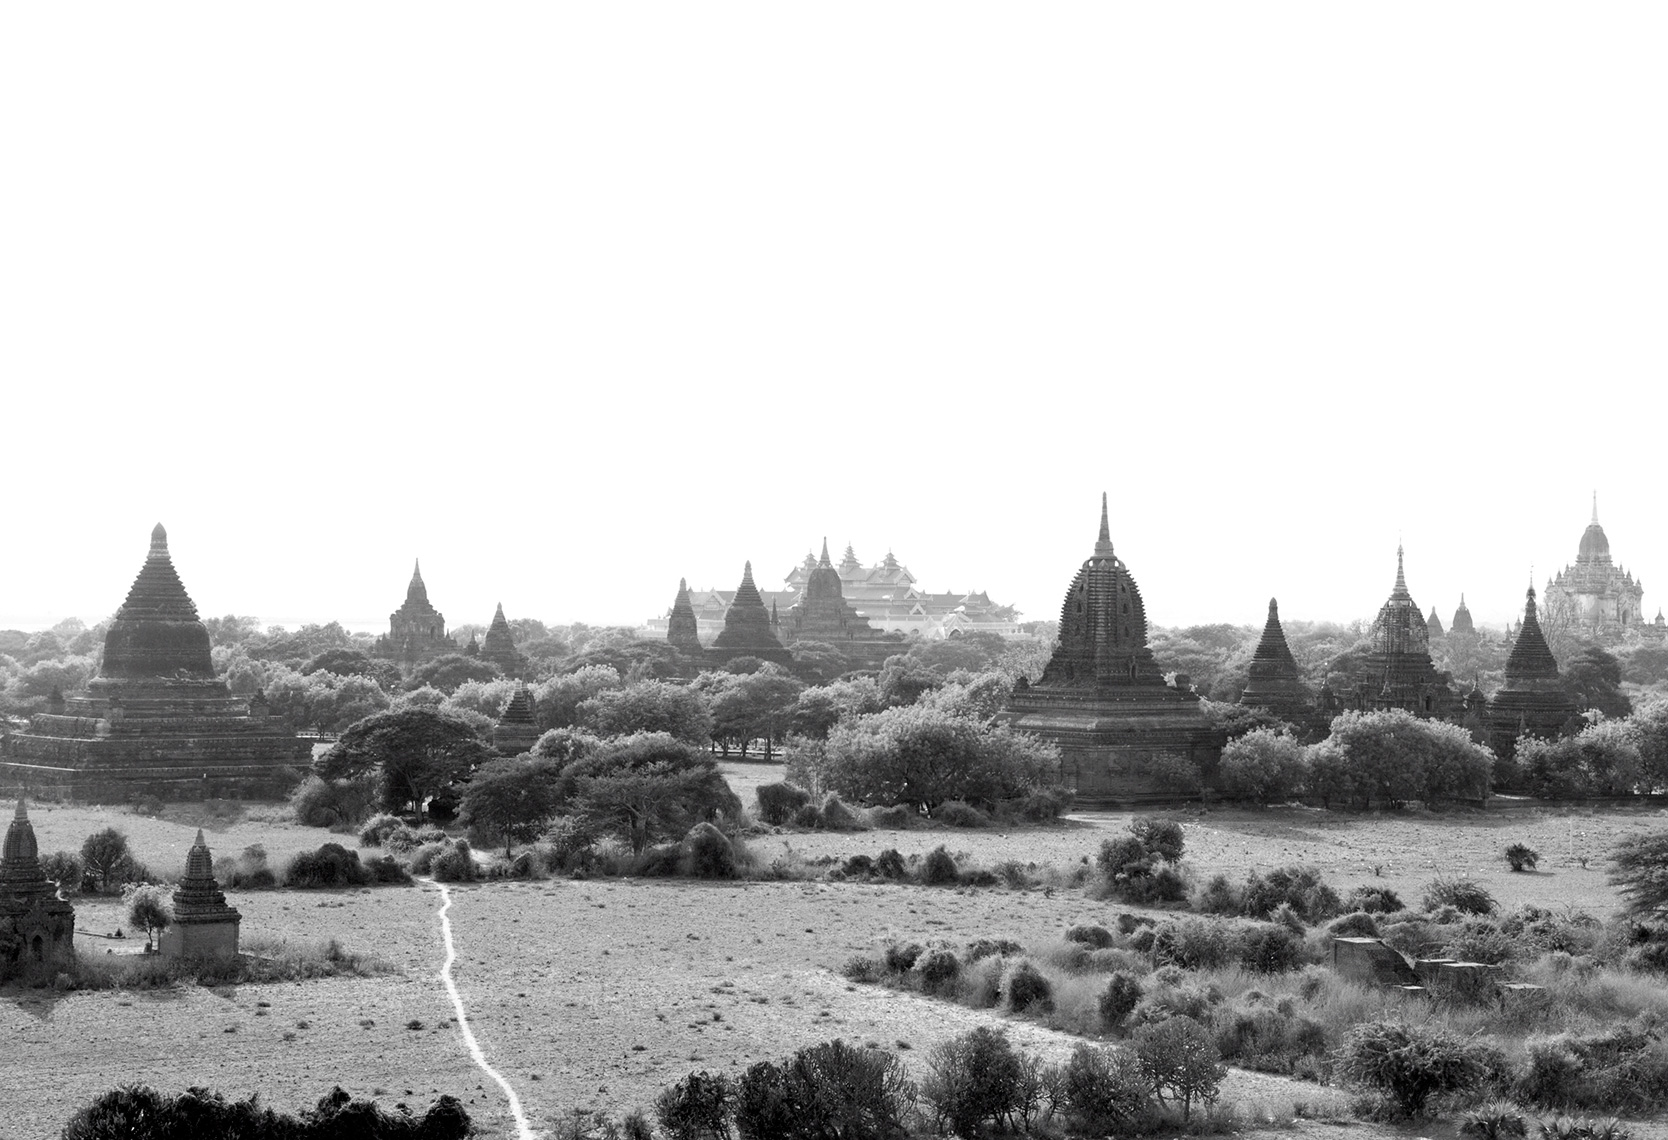 GH_TRAVEL_BURMA_BAGAN_07